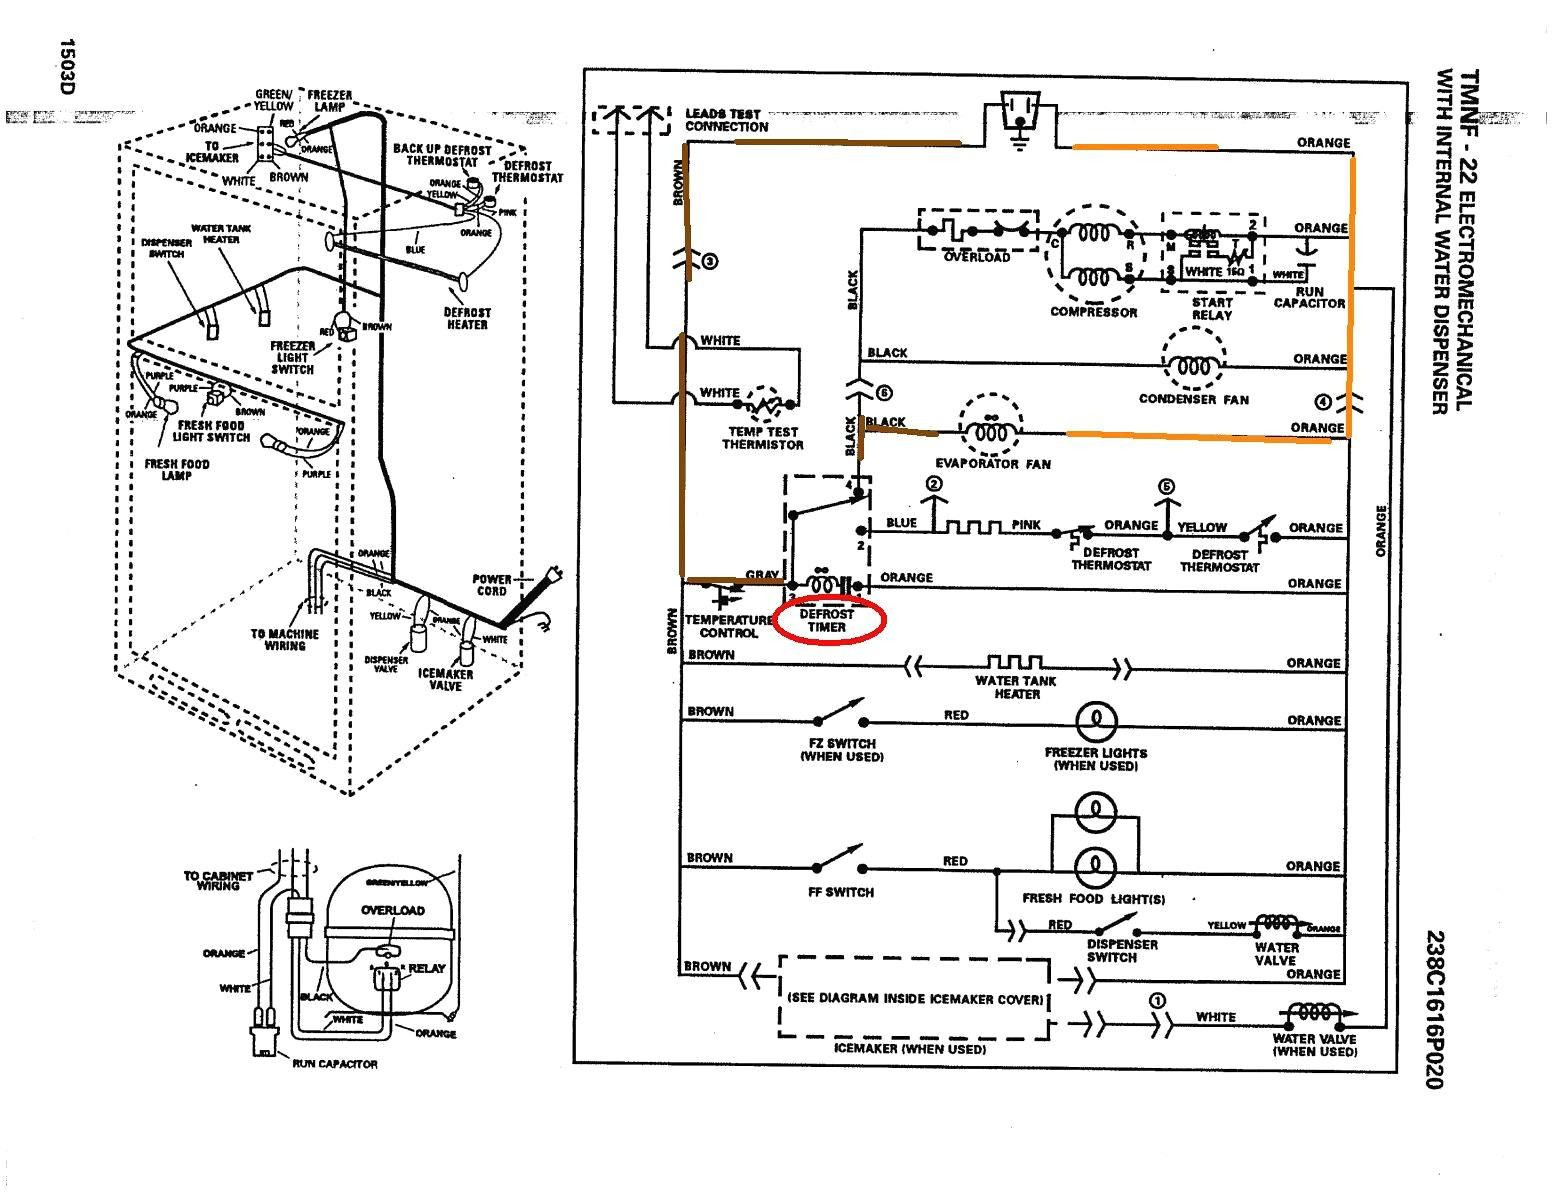 hight resolution of ge refrigerator electrical wiring diagram wiring diagrams scematic whirlpool dishwasher wiring diagram refrigerator wiring schematic